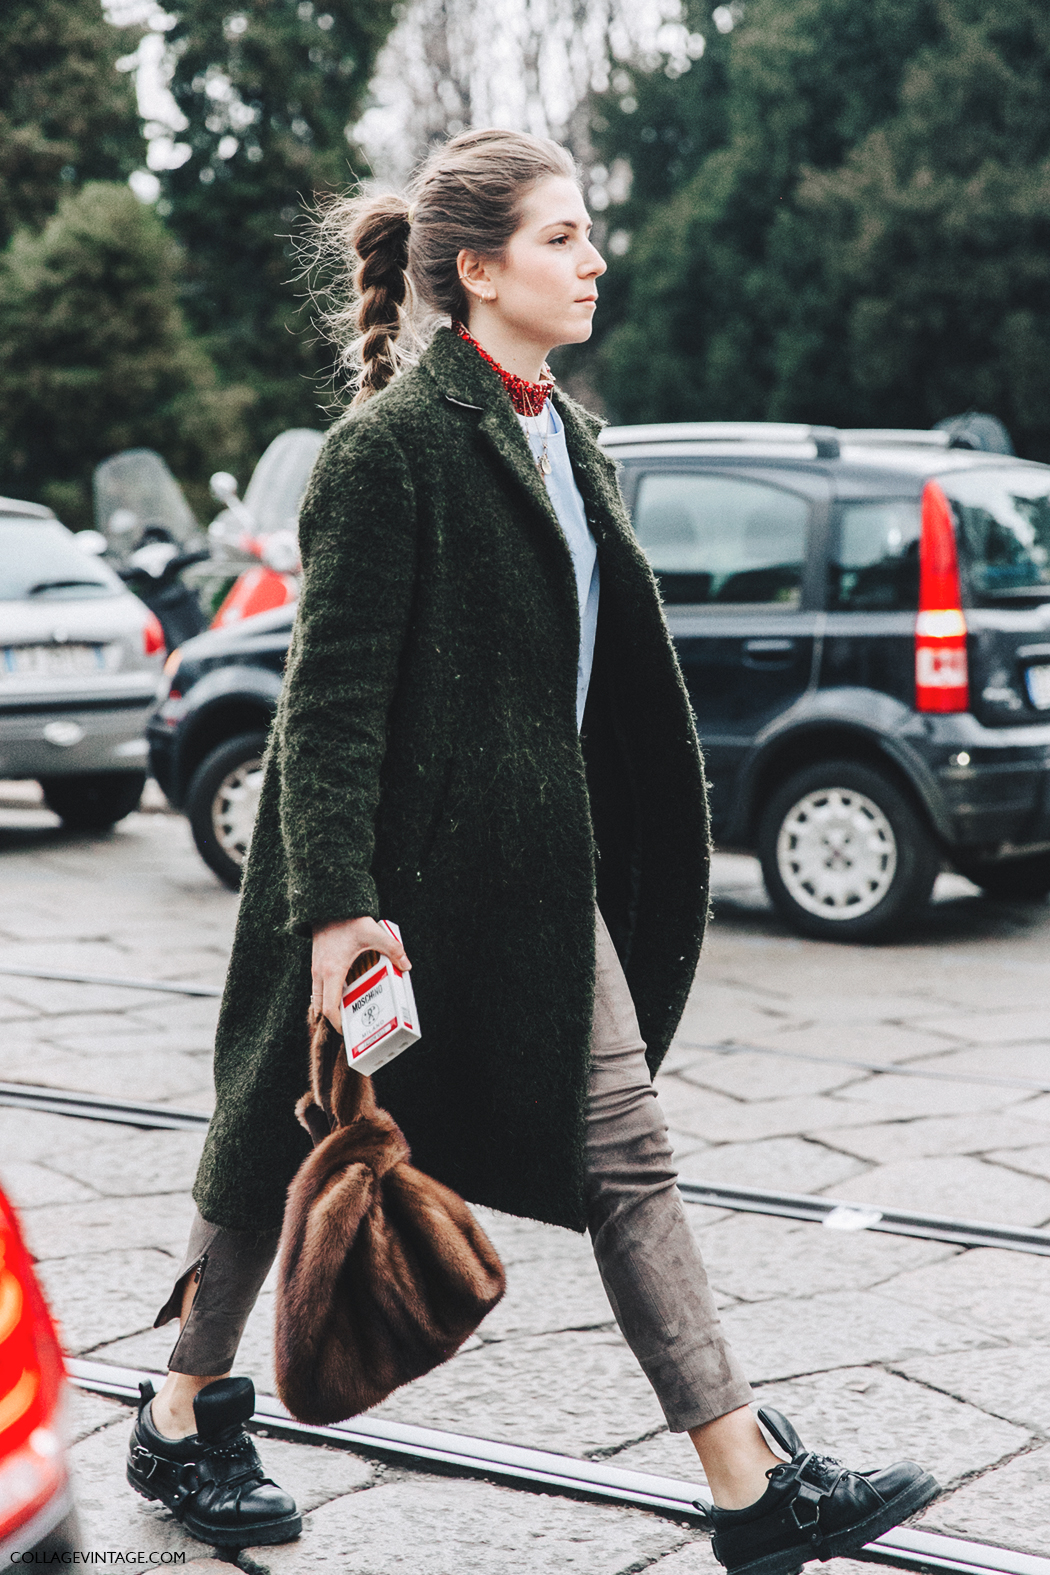 Milan_Fashion_Week_Fall_16-MFW-Street_Style-Collage_Vintage-Sneakers-Moschino_Iphone_Case-1